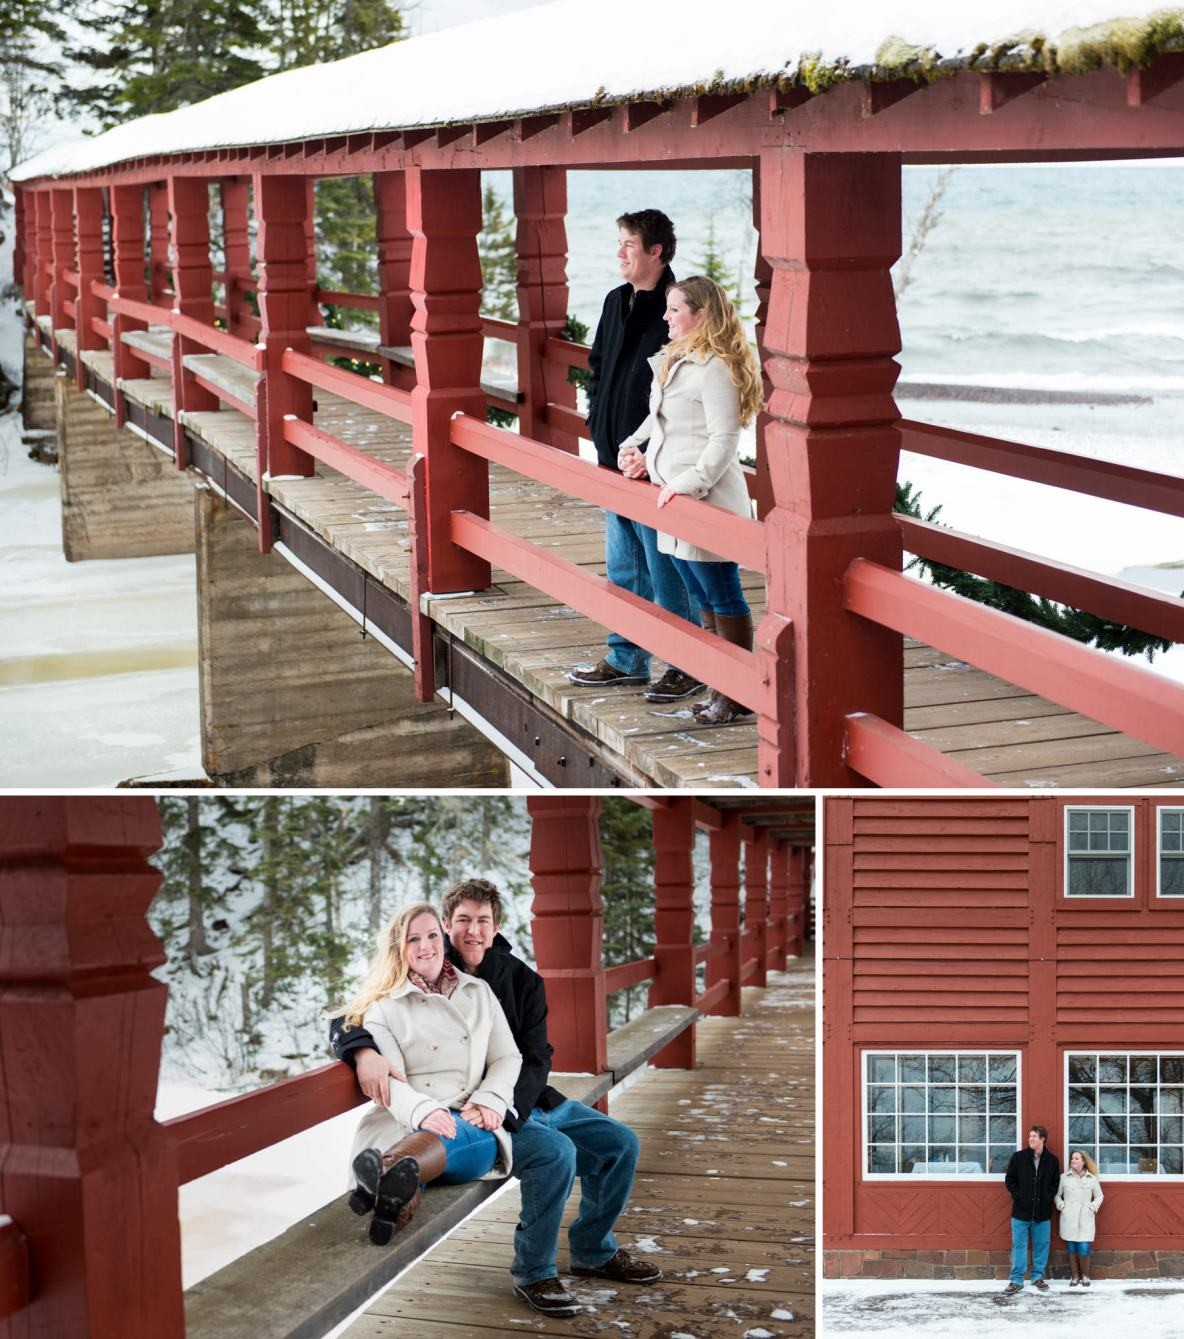 Winter engagement photography on the North Shore of Lake Superior at Lutsen Mountain, MN.